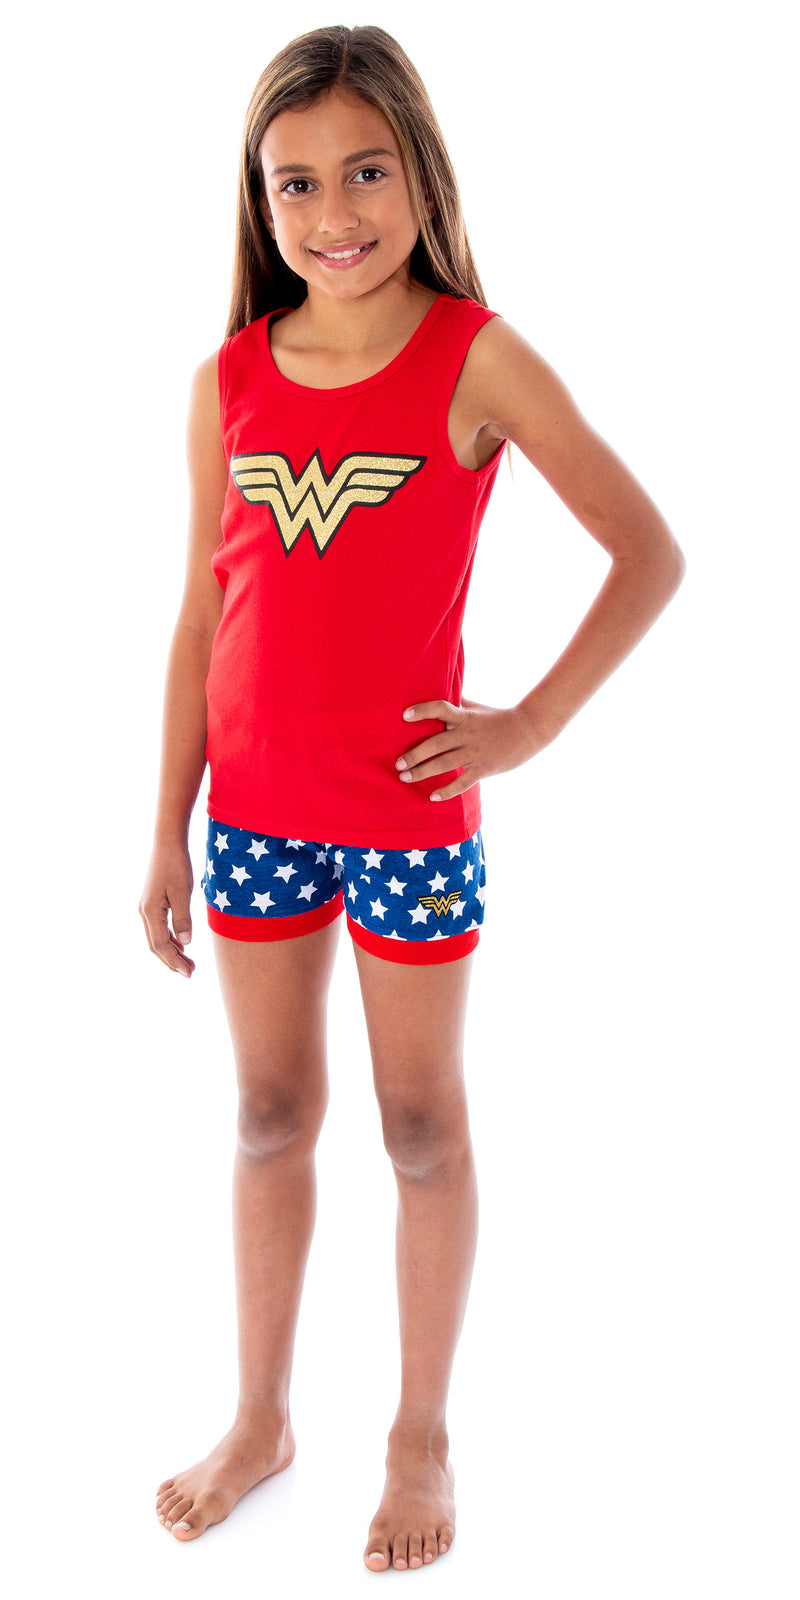 DC Comics Girls Wonder Woman Pajamas WW Logo Tank Top And Shorts 2 Piece Superhero Pajama Set For Girls